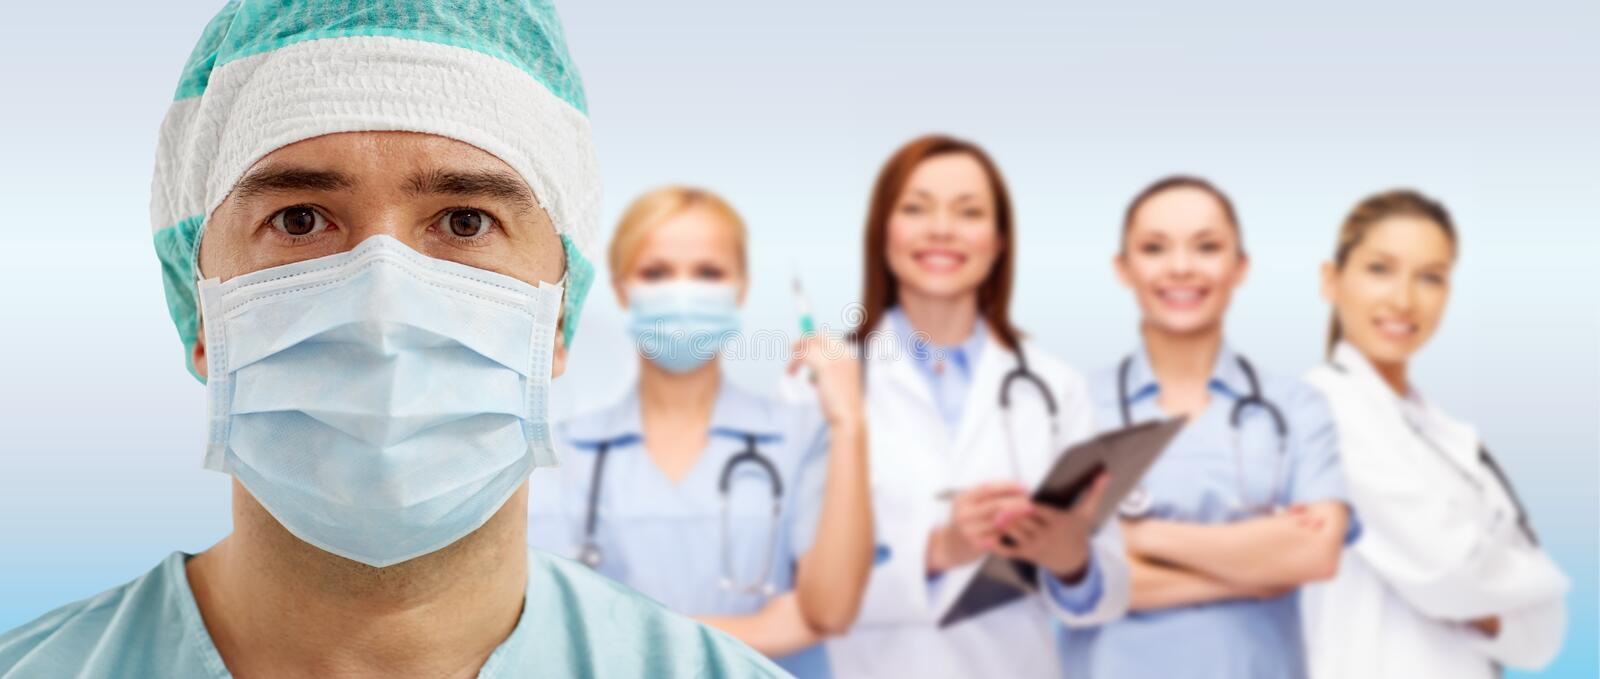 Surgeon in mask with group of medics over blue royalty free stock image